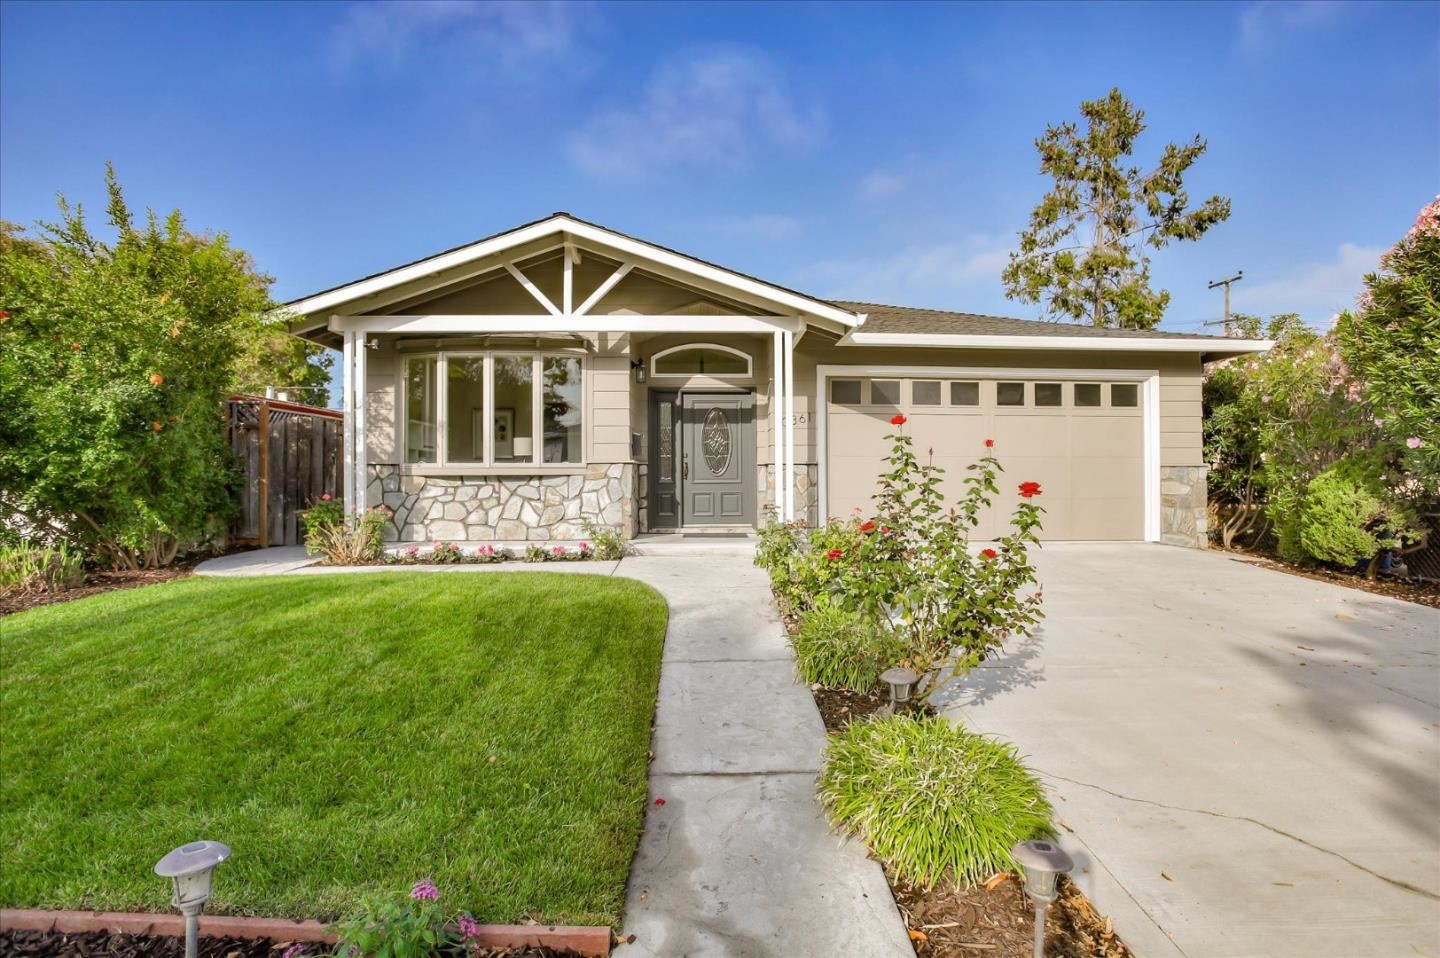 Photo for 10361 Menhart LN, CUPERTINO, CA 95014 (MLS # ML81813664)